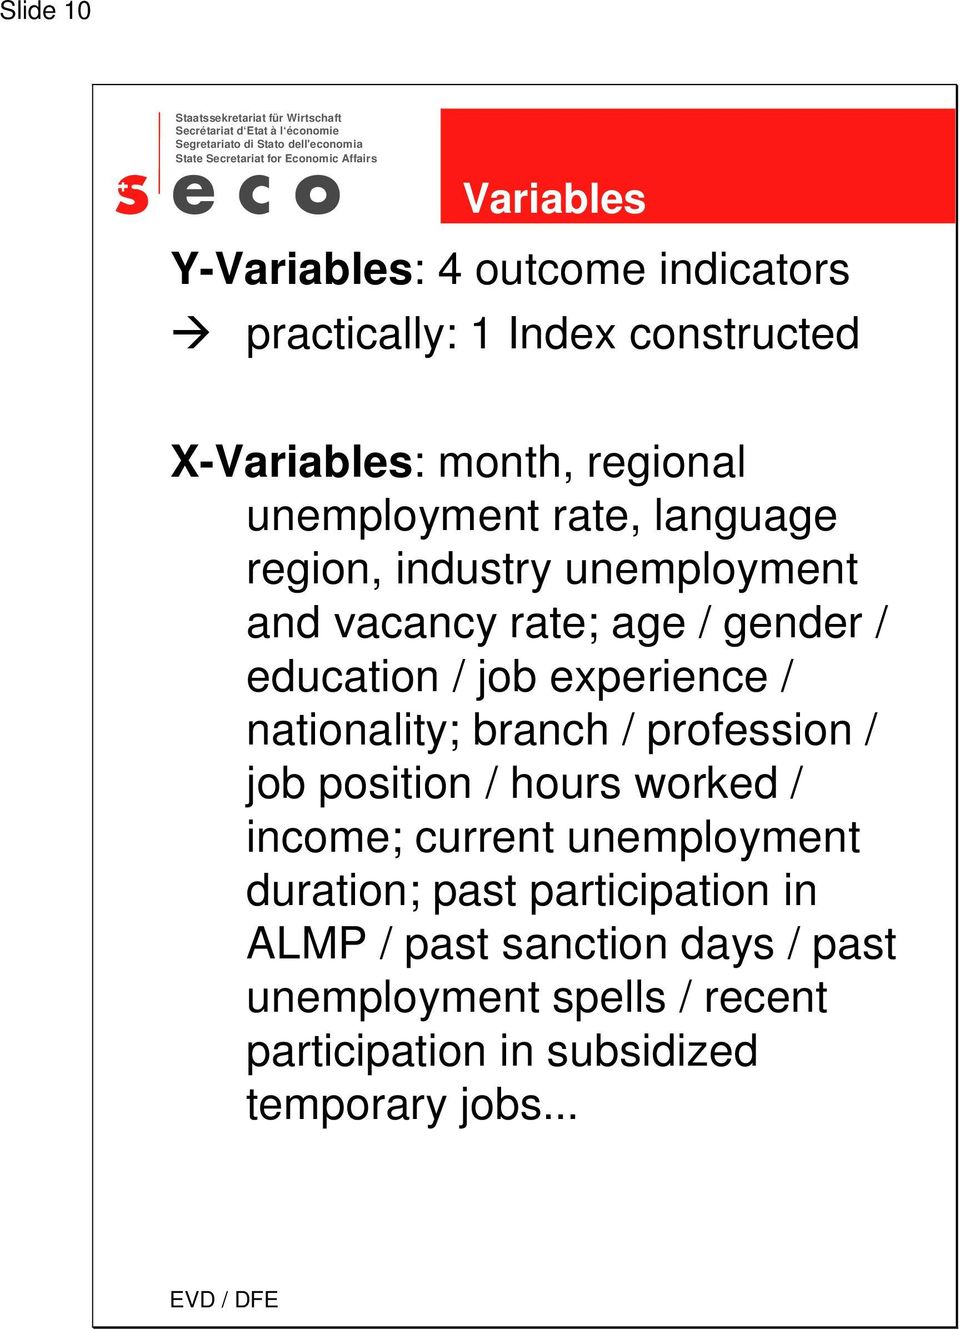 experience / nationality; branch / profession / job position / hours worked / income; current unemployment duration;